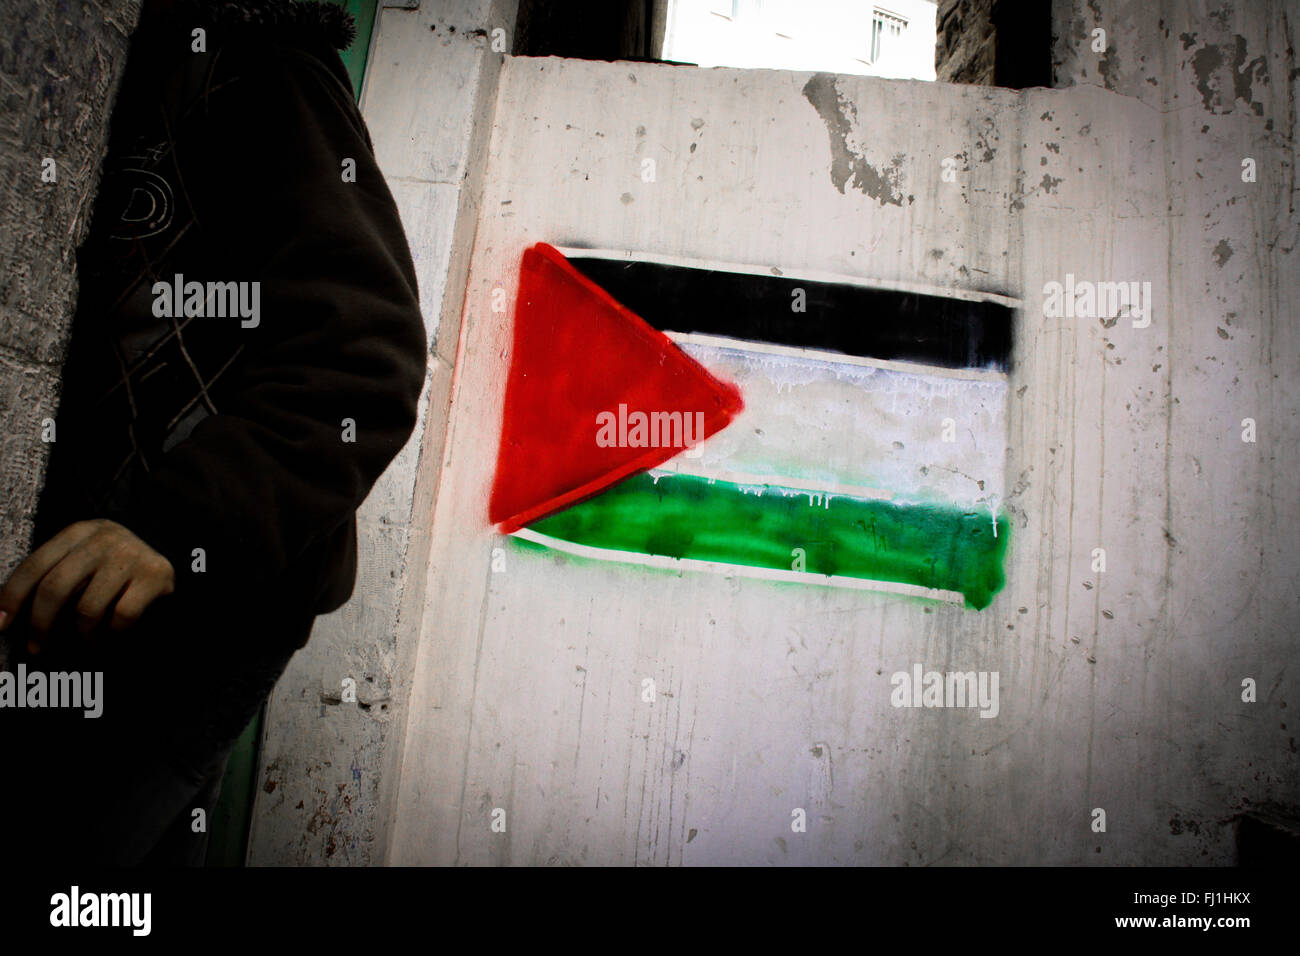 Palestine - palestinian occupied territories - people and places - Stock Image